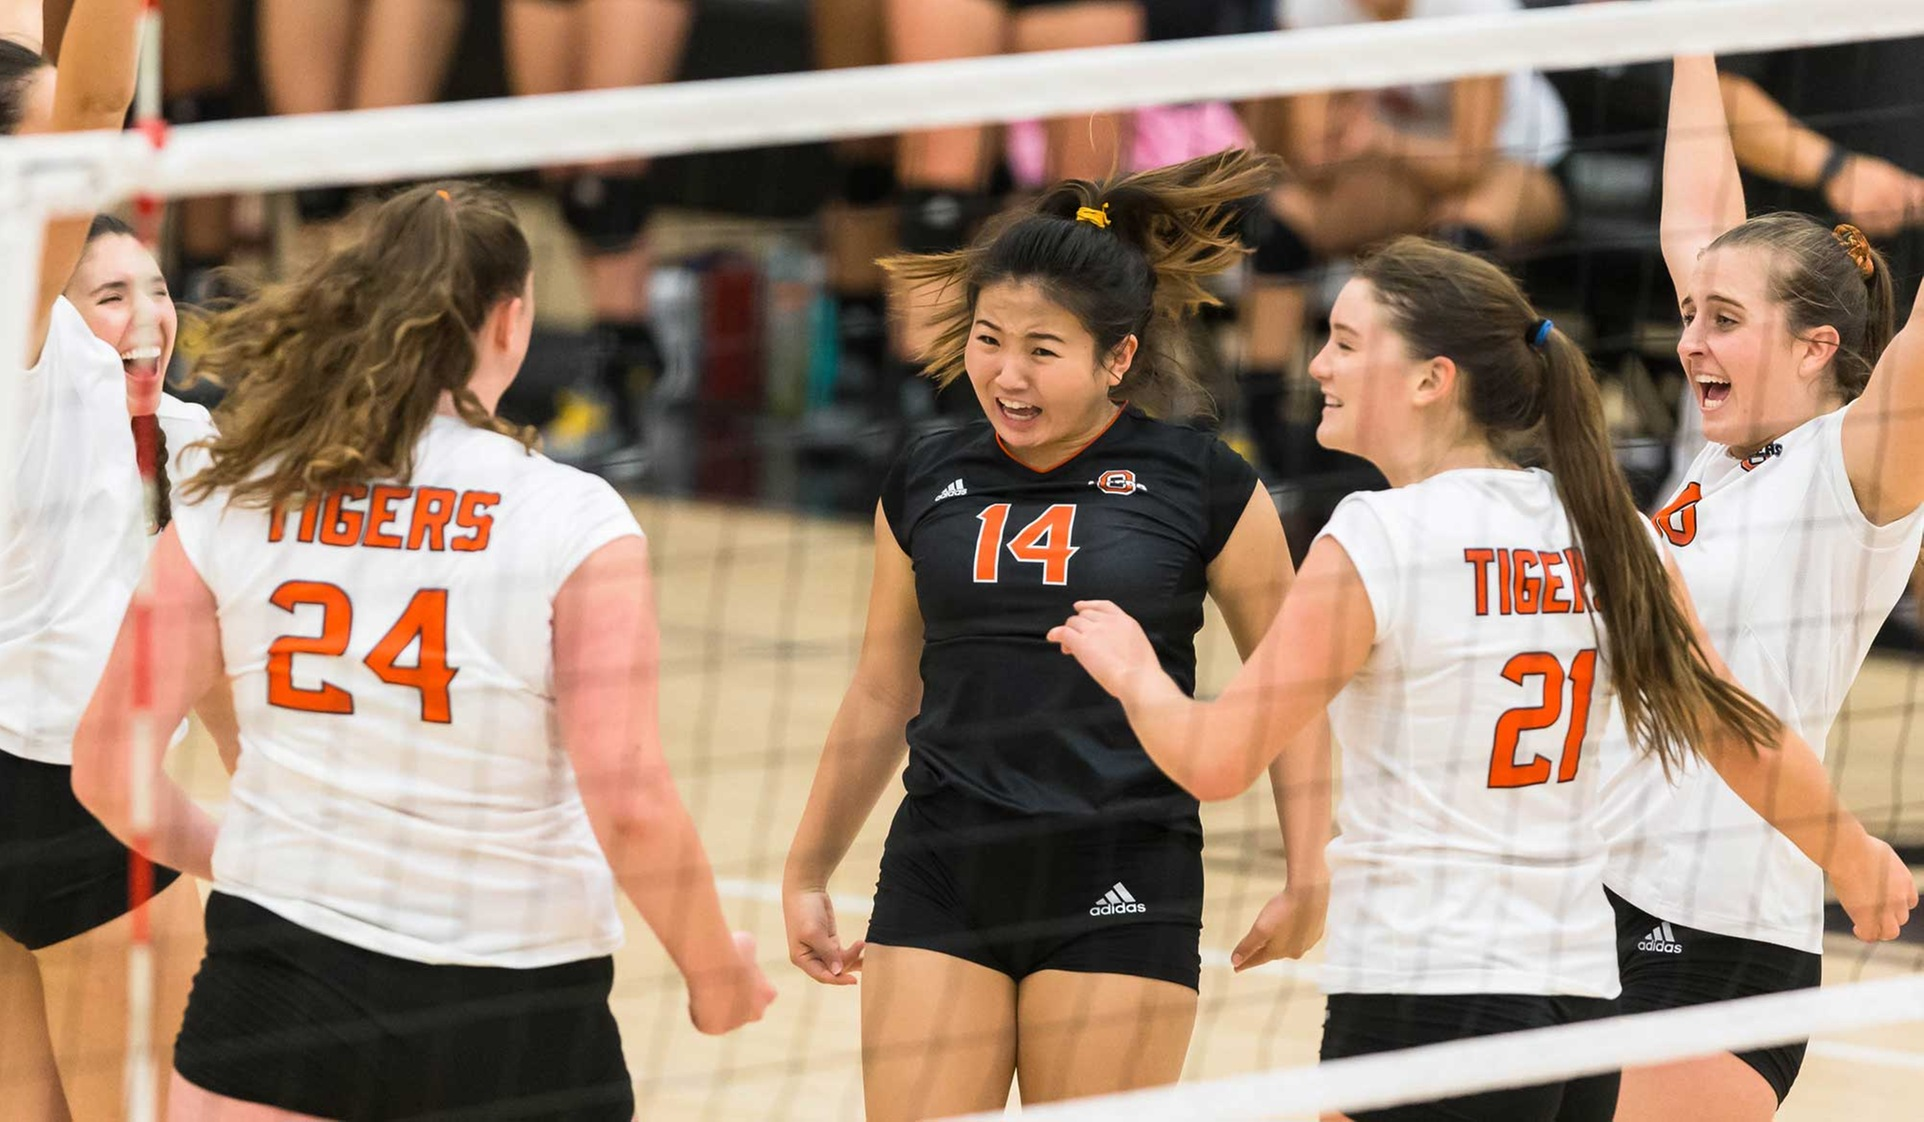 Nevins, Degnan Lead Tigers Over Beavers